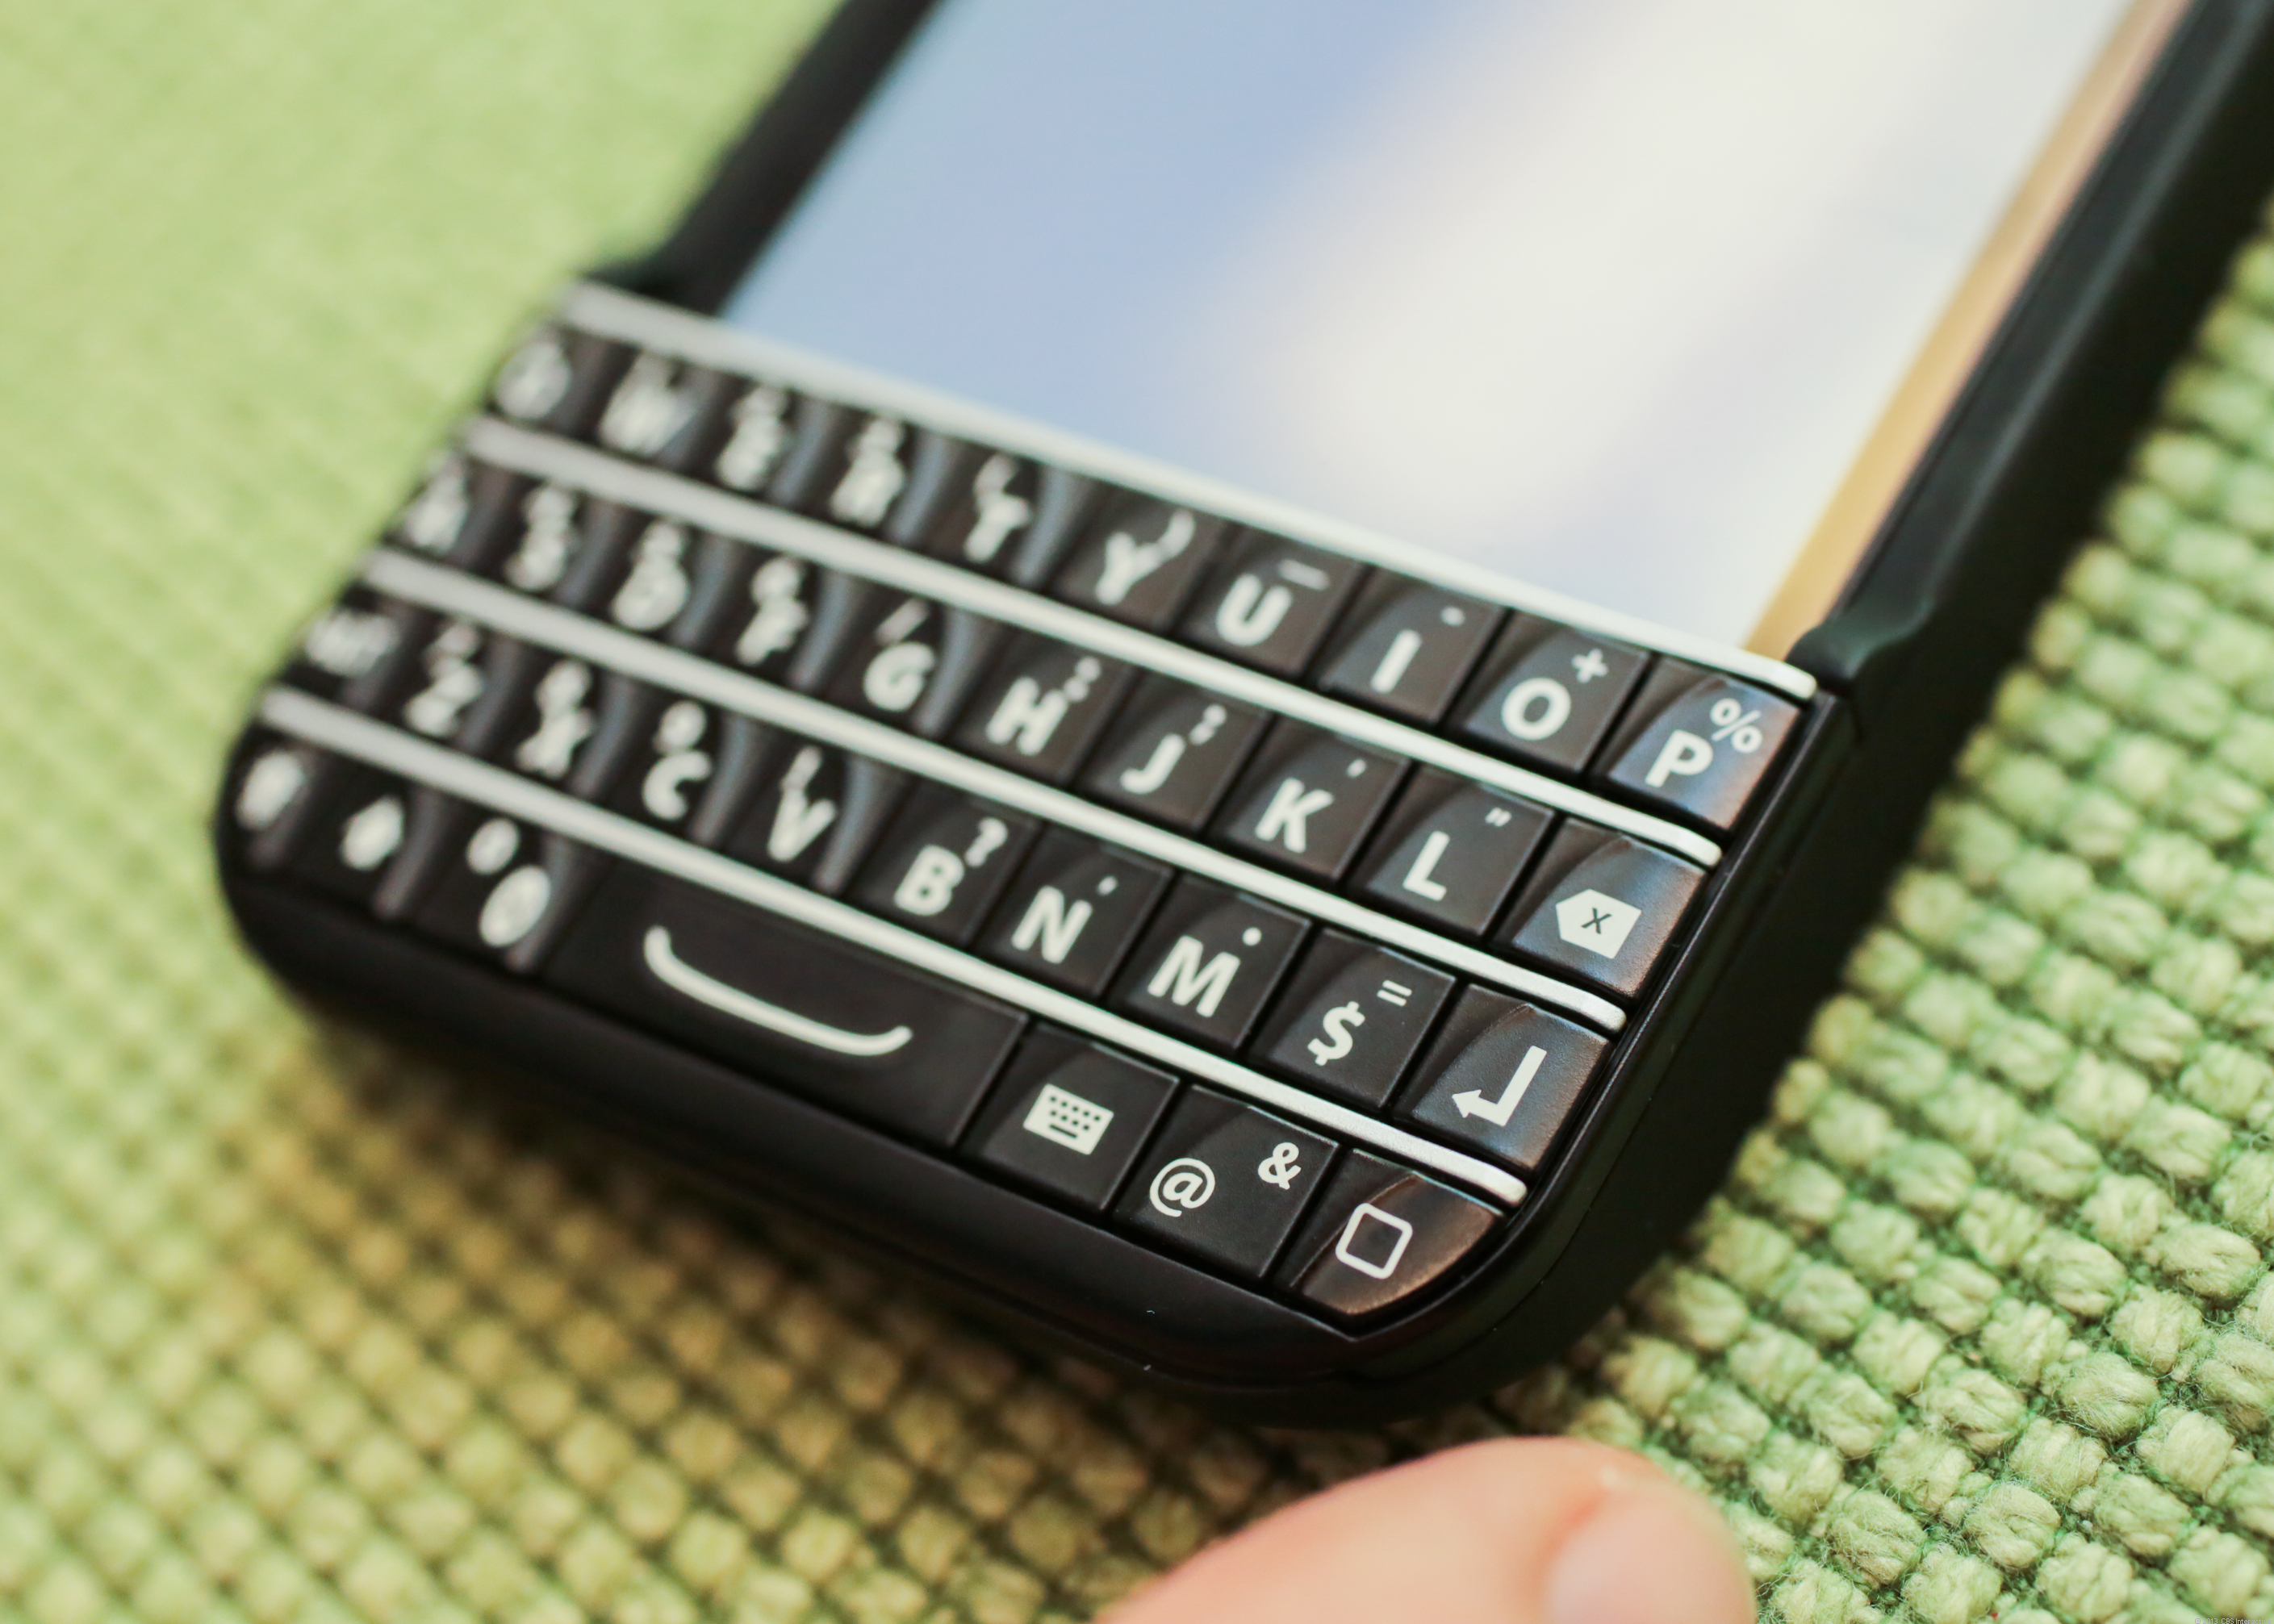 The Typo Keyboard snaps around an iPhone 5 or 5S, giving a BlackBerry-like hardware keyboard to people who want more than the iPhone's screen keyboard.